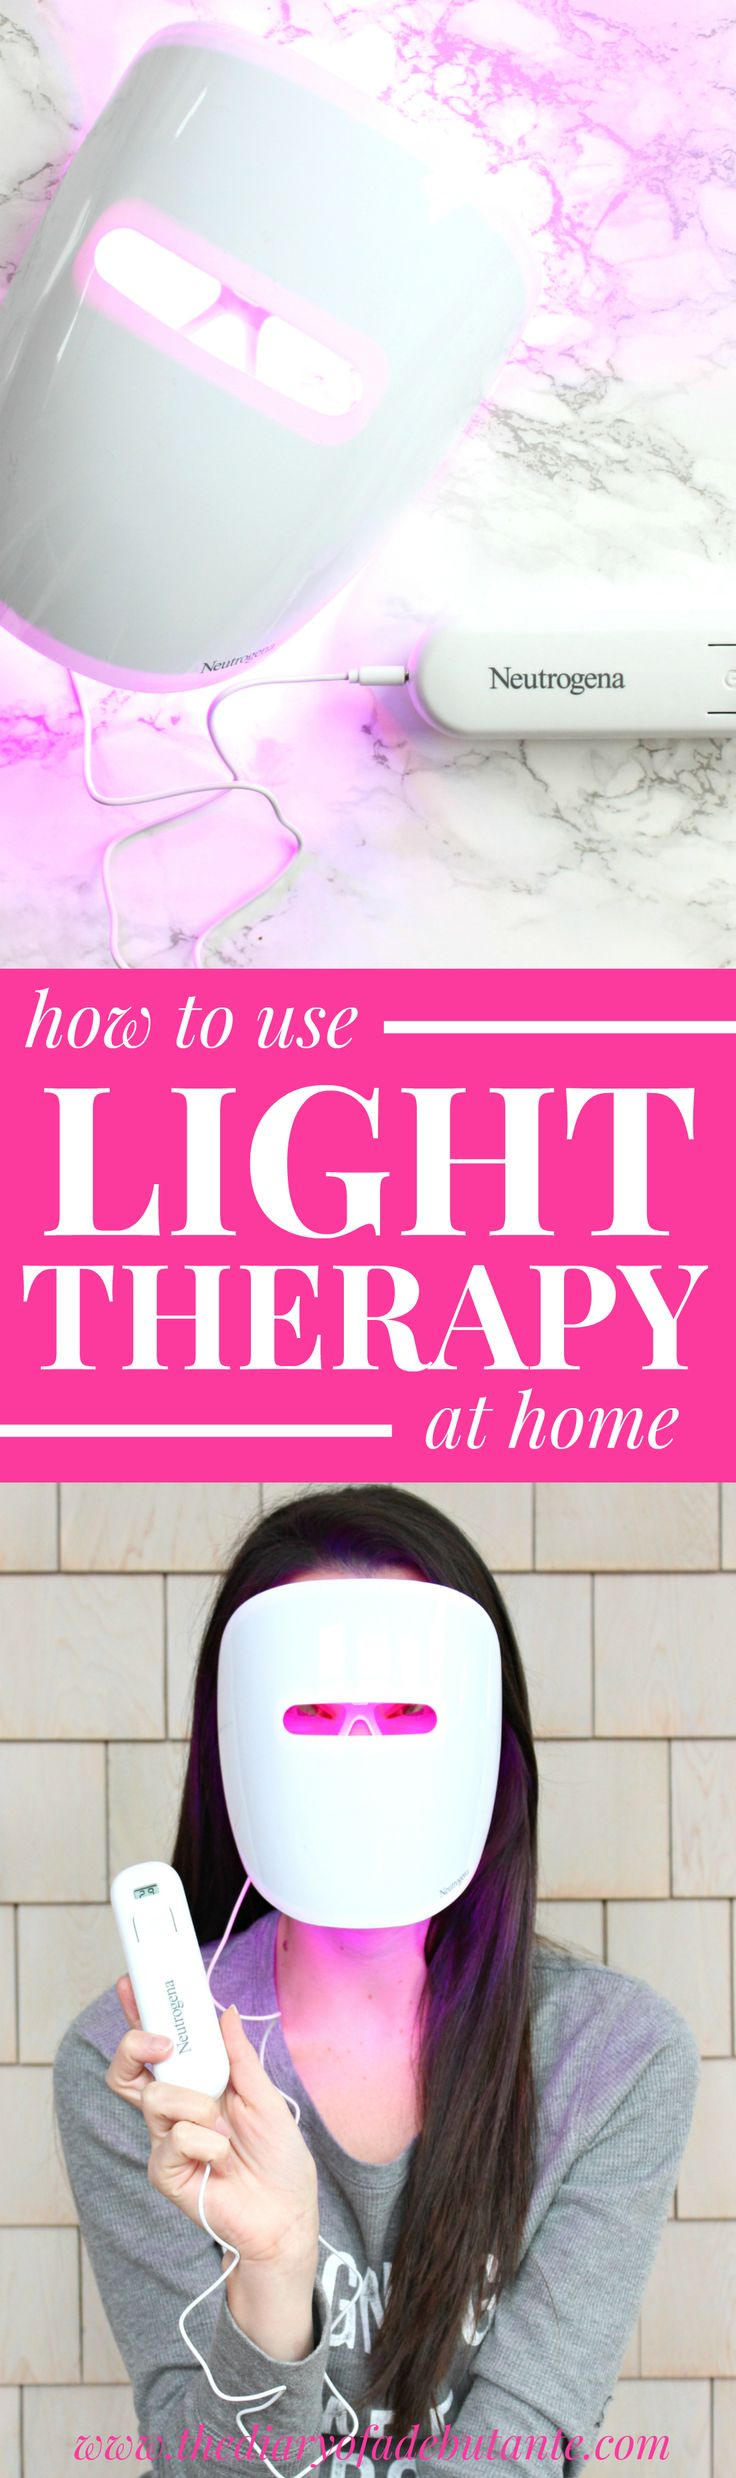 How to use light therapy at home with Neutrogena's brand new Light Therapy Acne Mask! Light therapy has been known to smooth overall skin tone, build collagen, reduce the appearance of wrinkles and blemishes, repair sun damage, and create a overall healthy glow around your face... so if you aren't happy with your skin, give it a try!